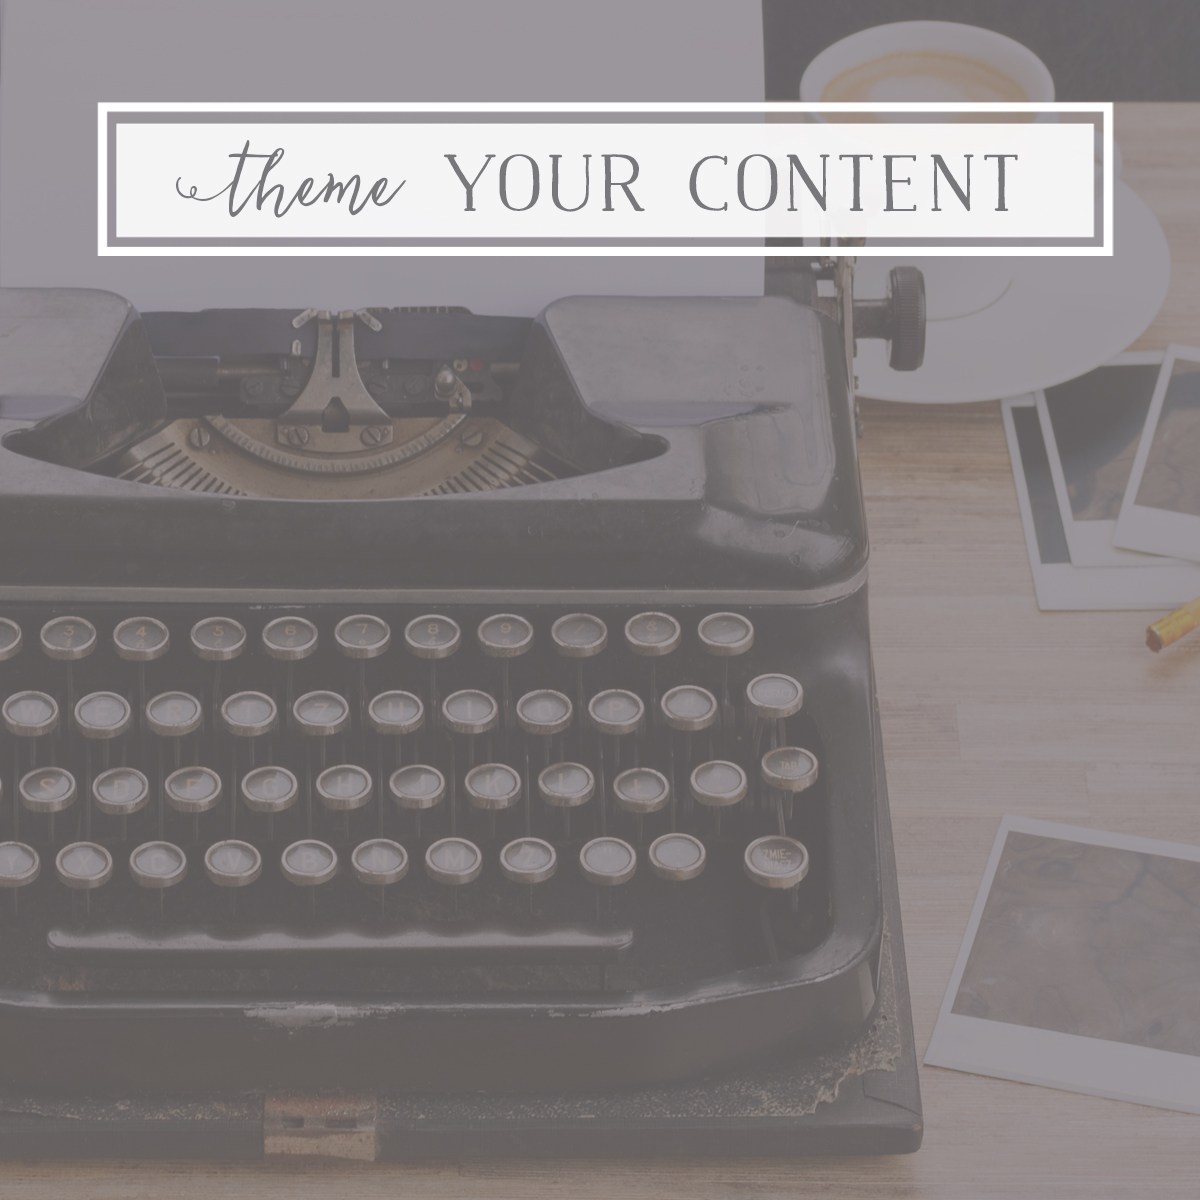 The truth behind content marketing